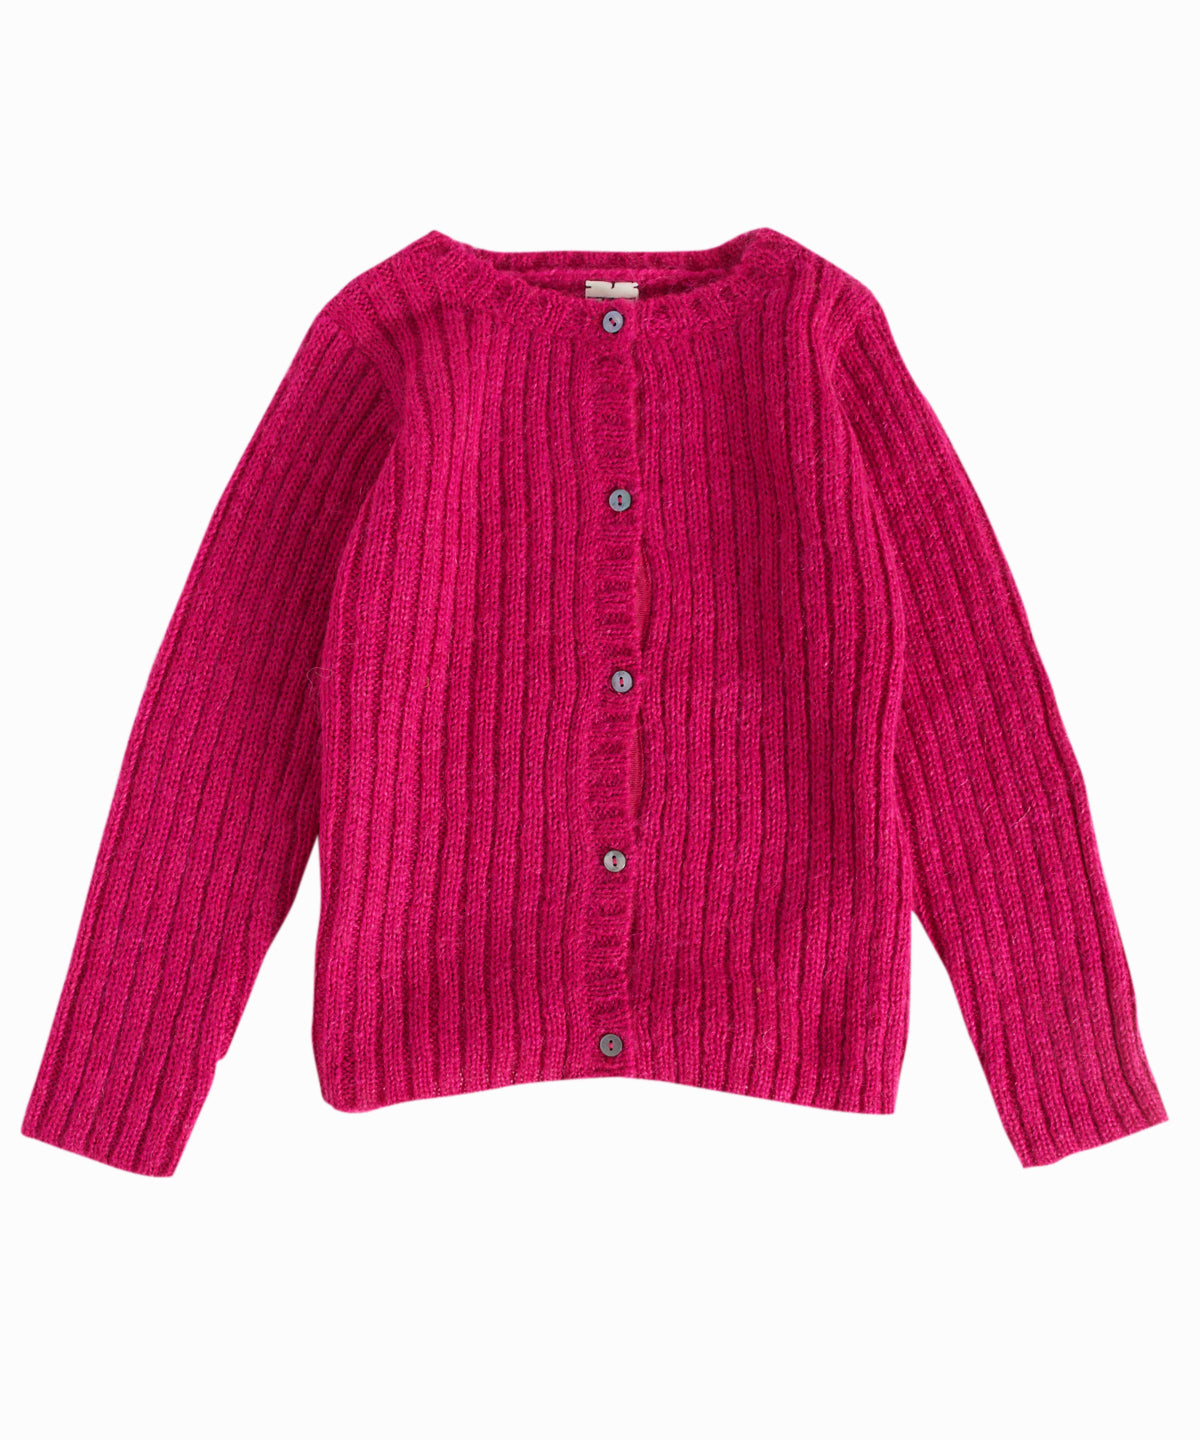 Shocking Rose Cable-Knit Cardigan